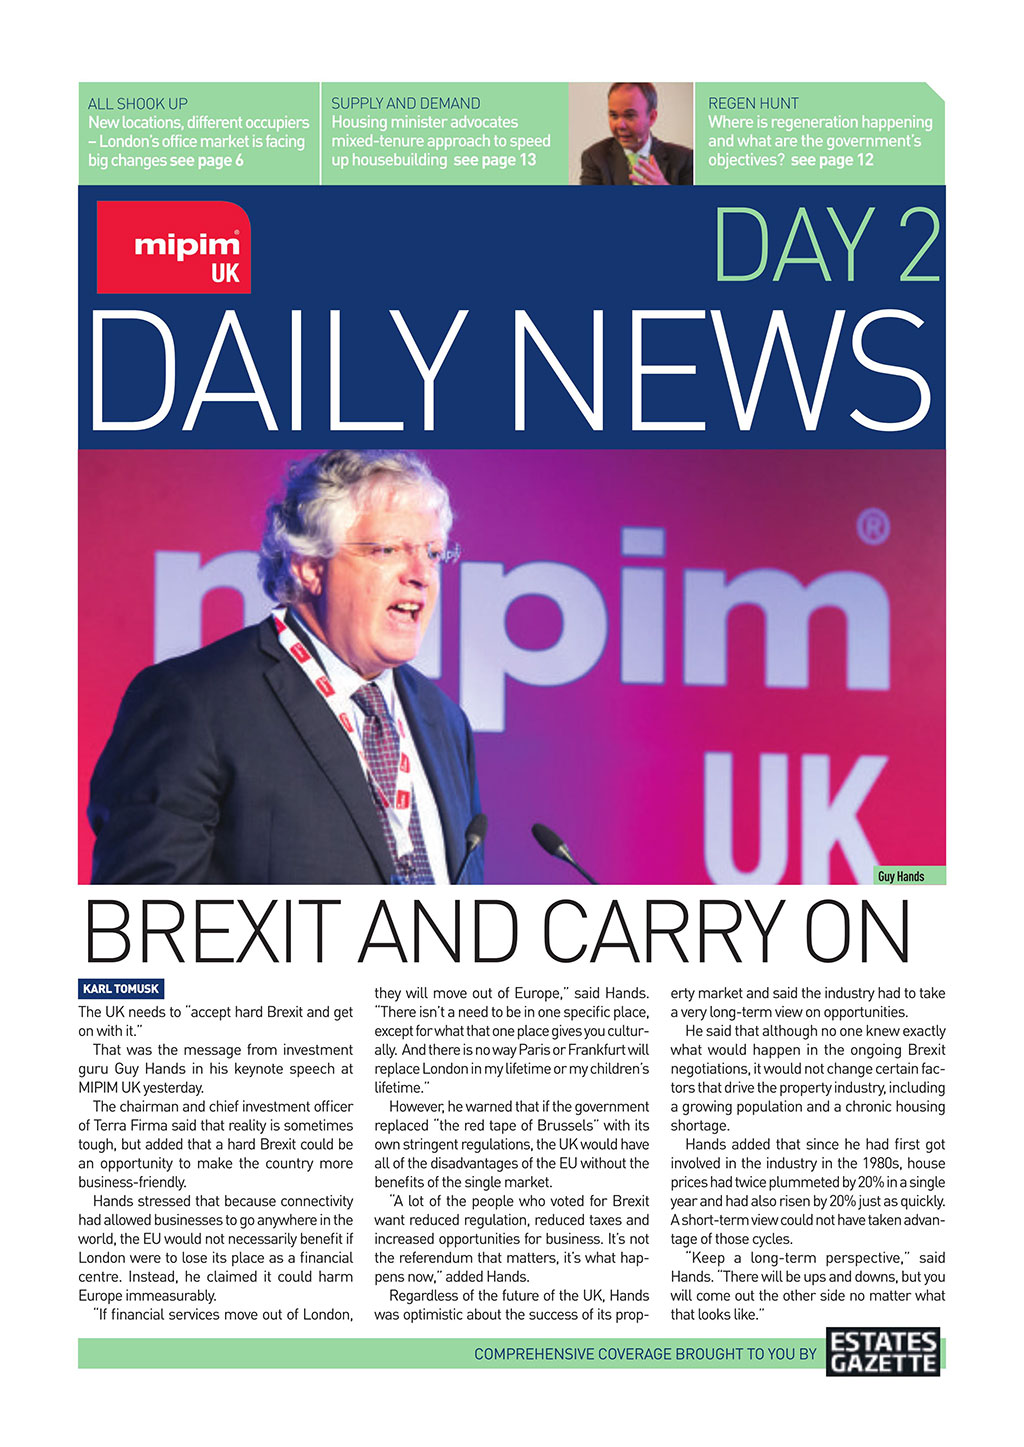 Click here to read today's MIPIM UK digital edition, brought to you by Estates Gazette